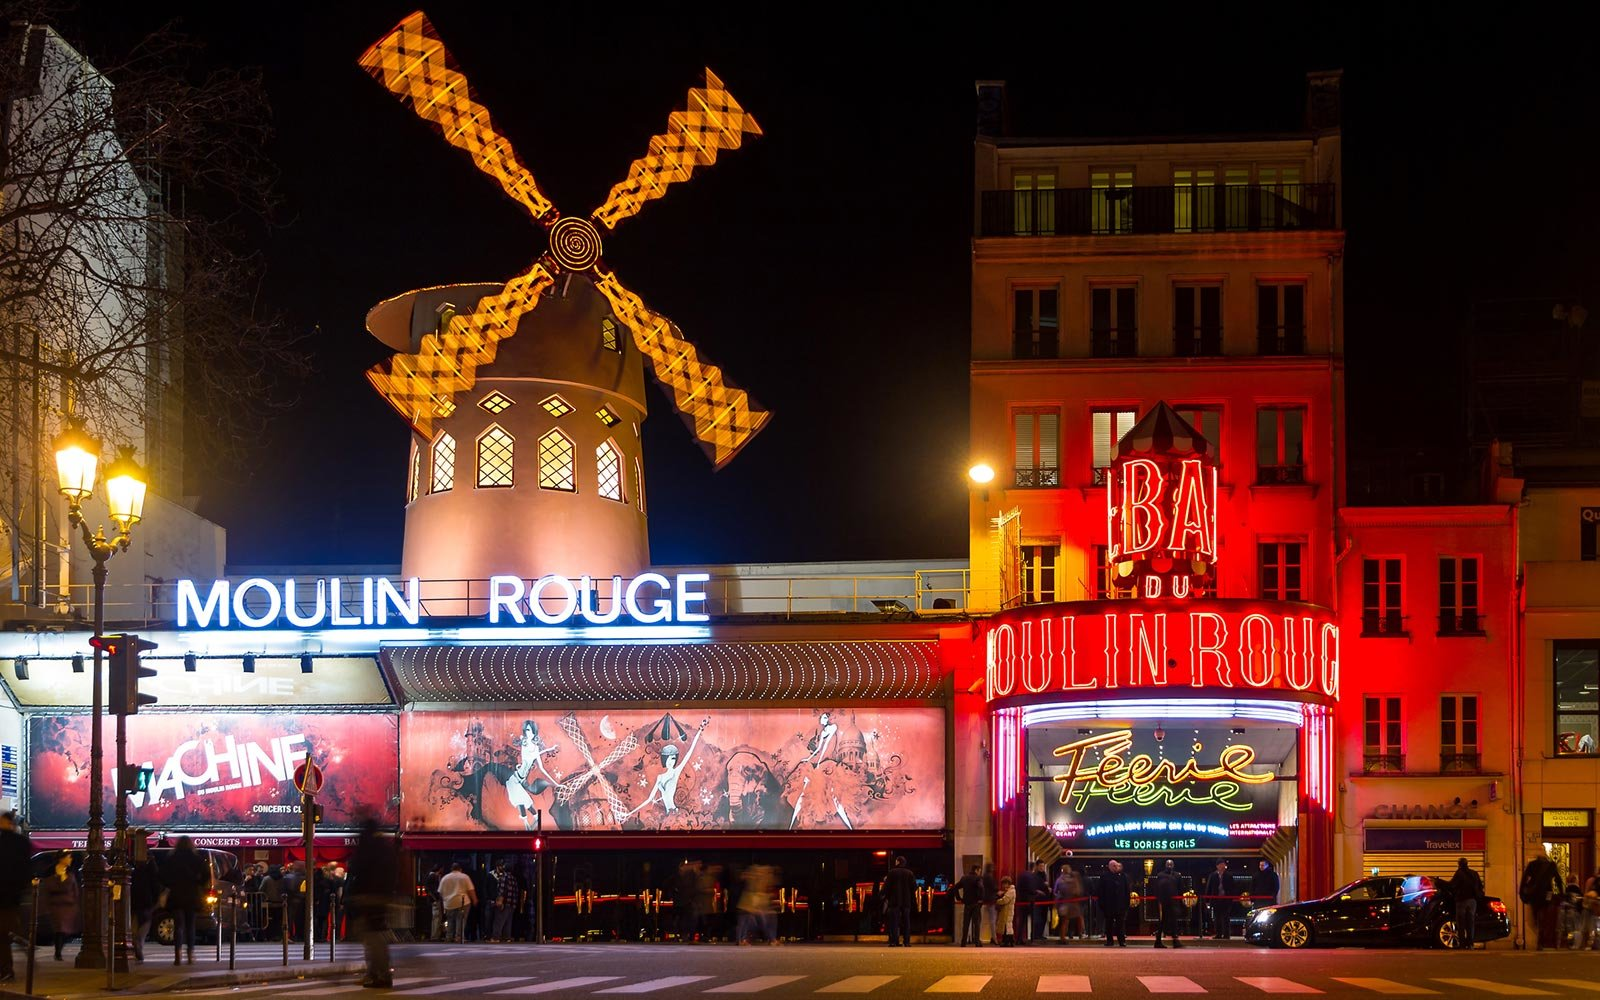 7. Moulin Rouge